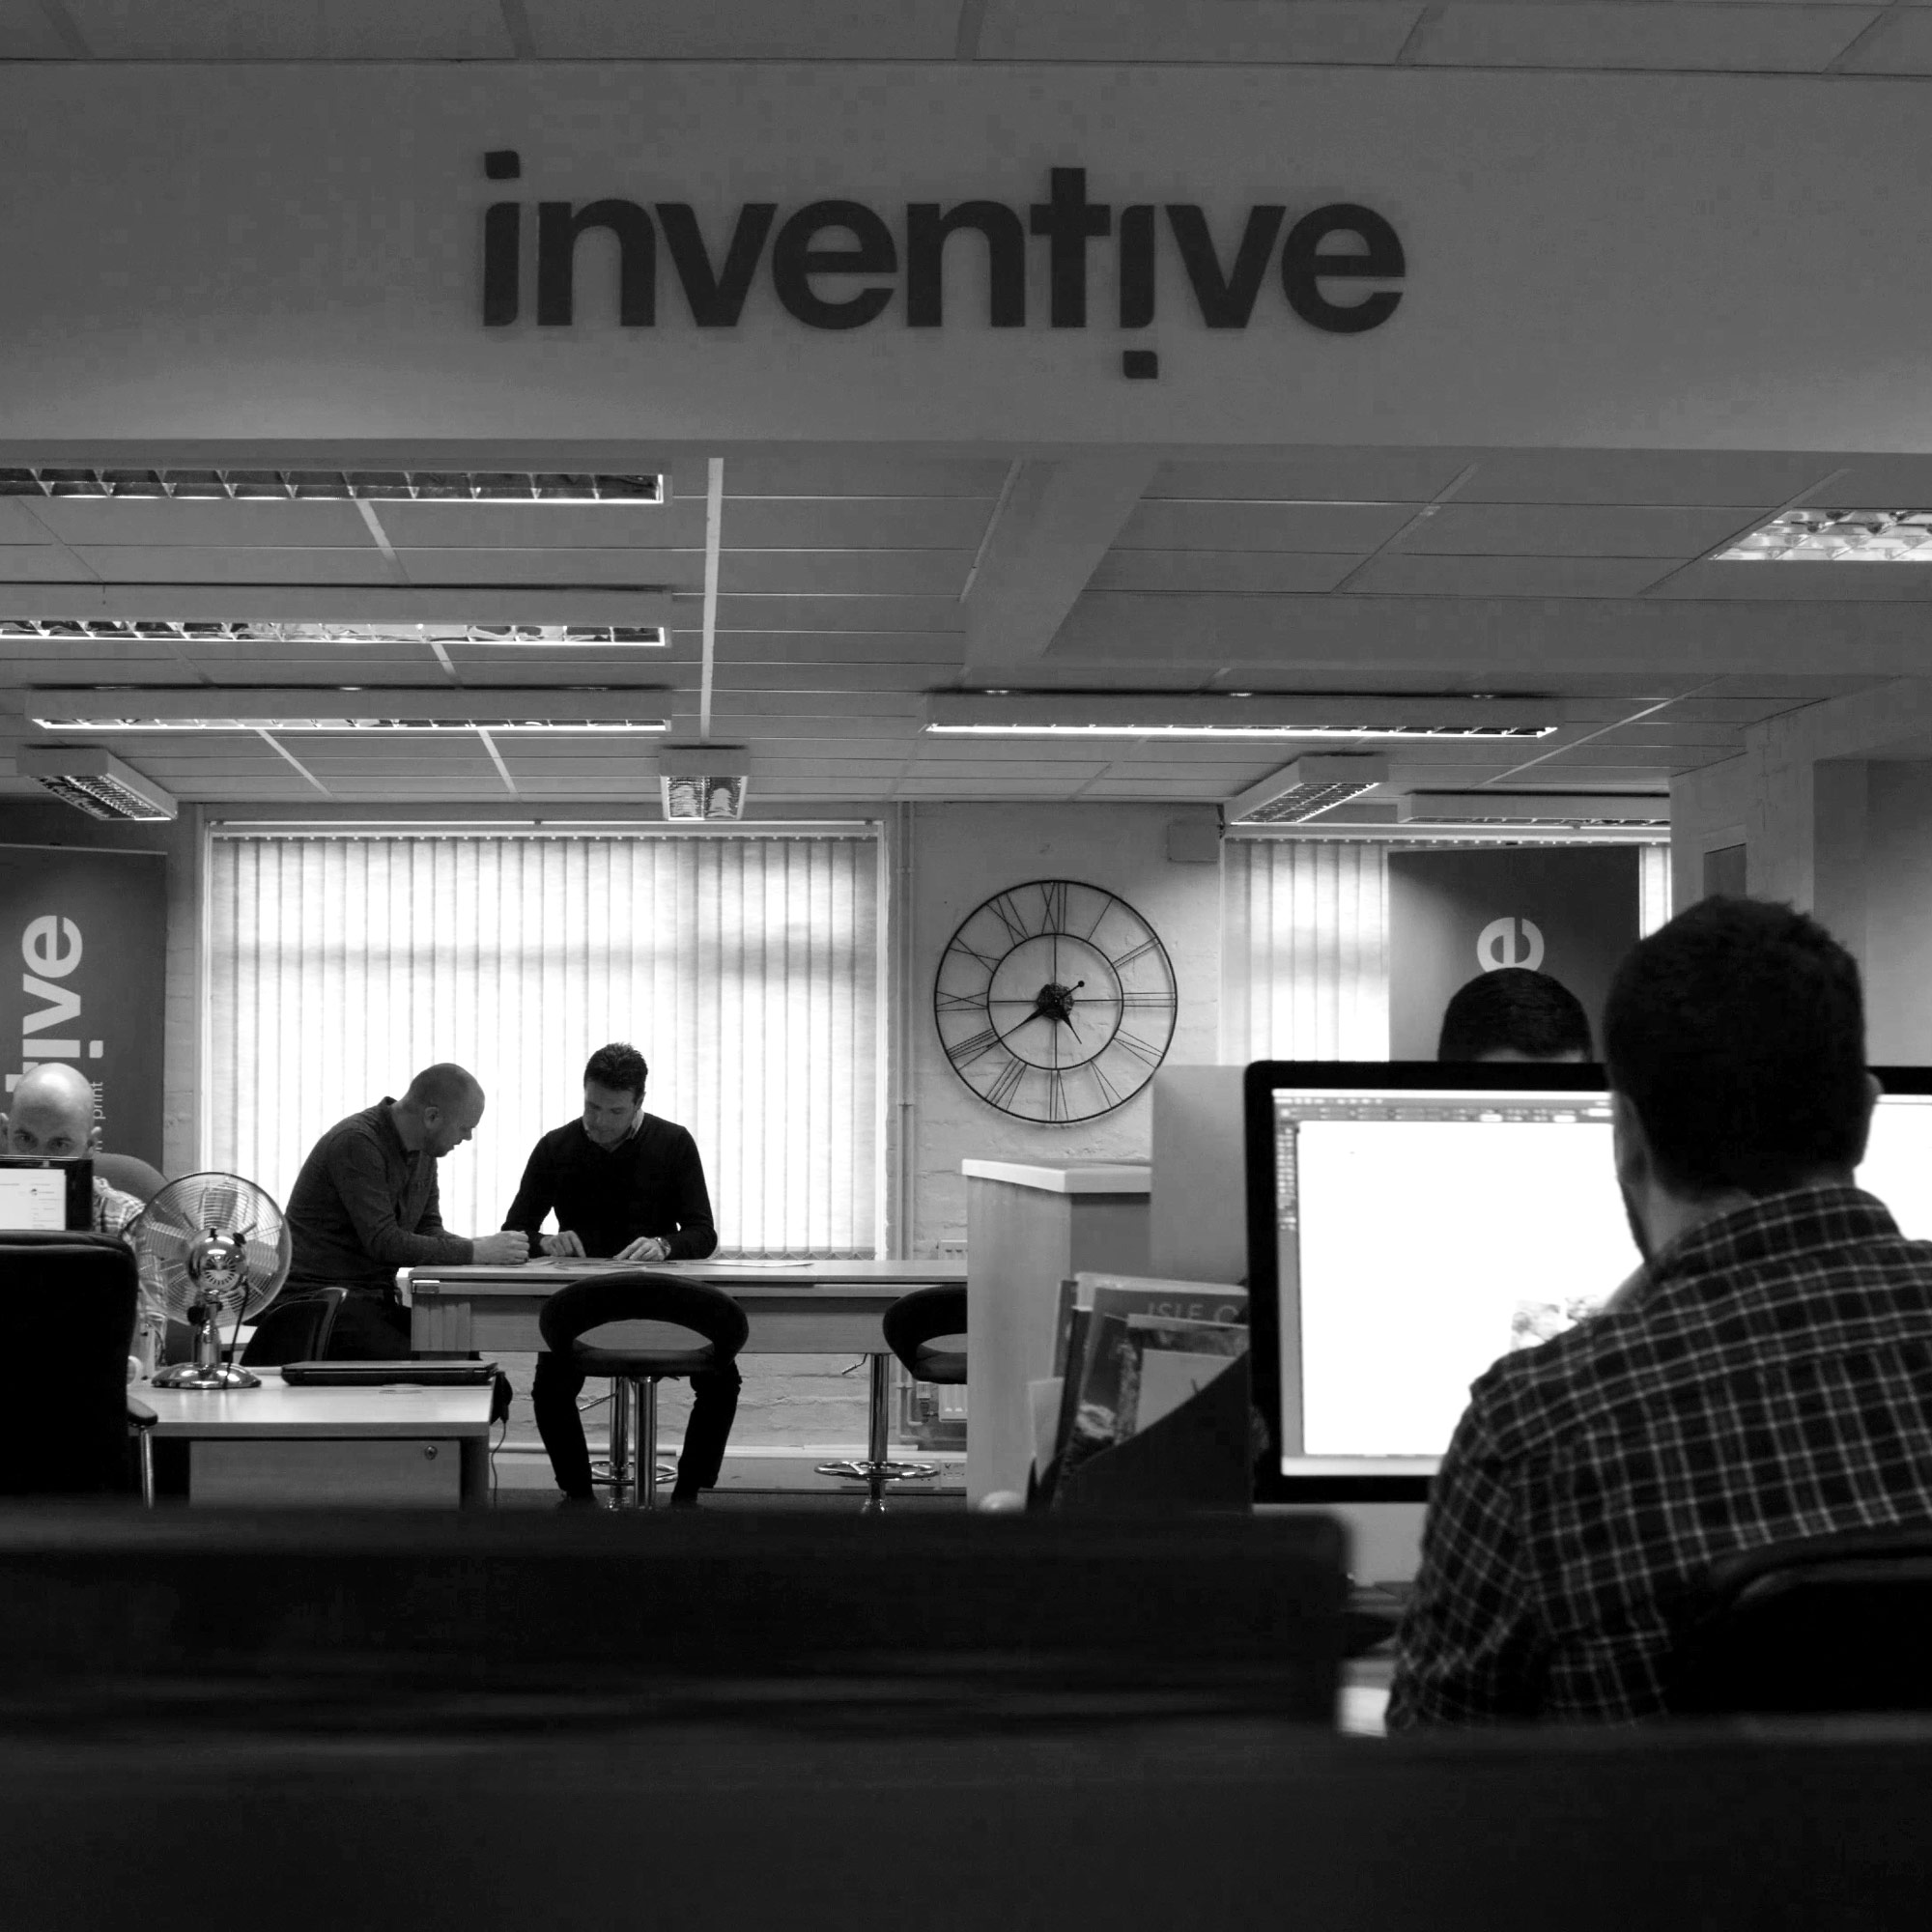 The Inventive Design office of Web Developers, Graphic Designers and Digital Marketers